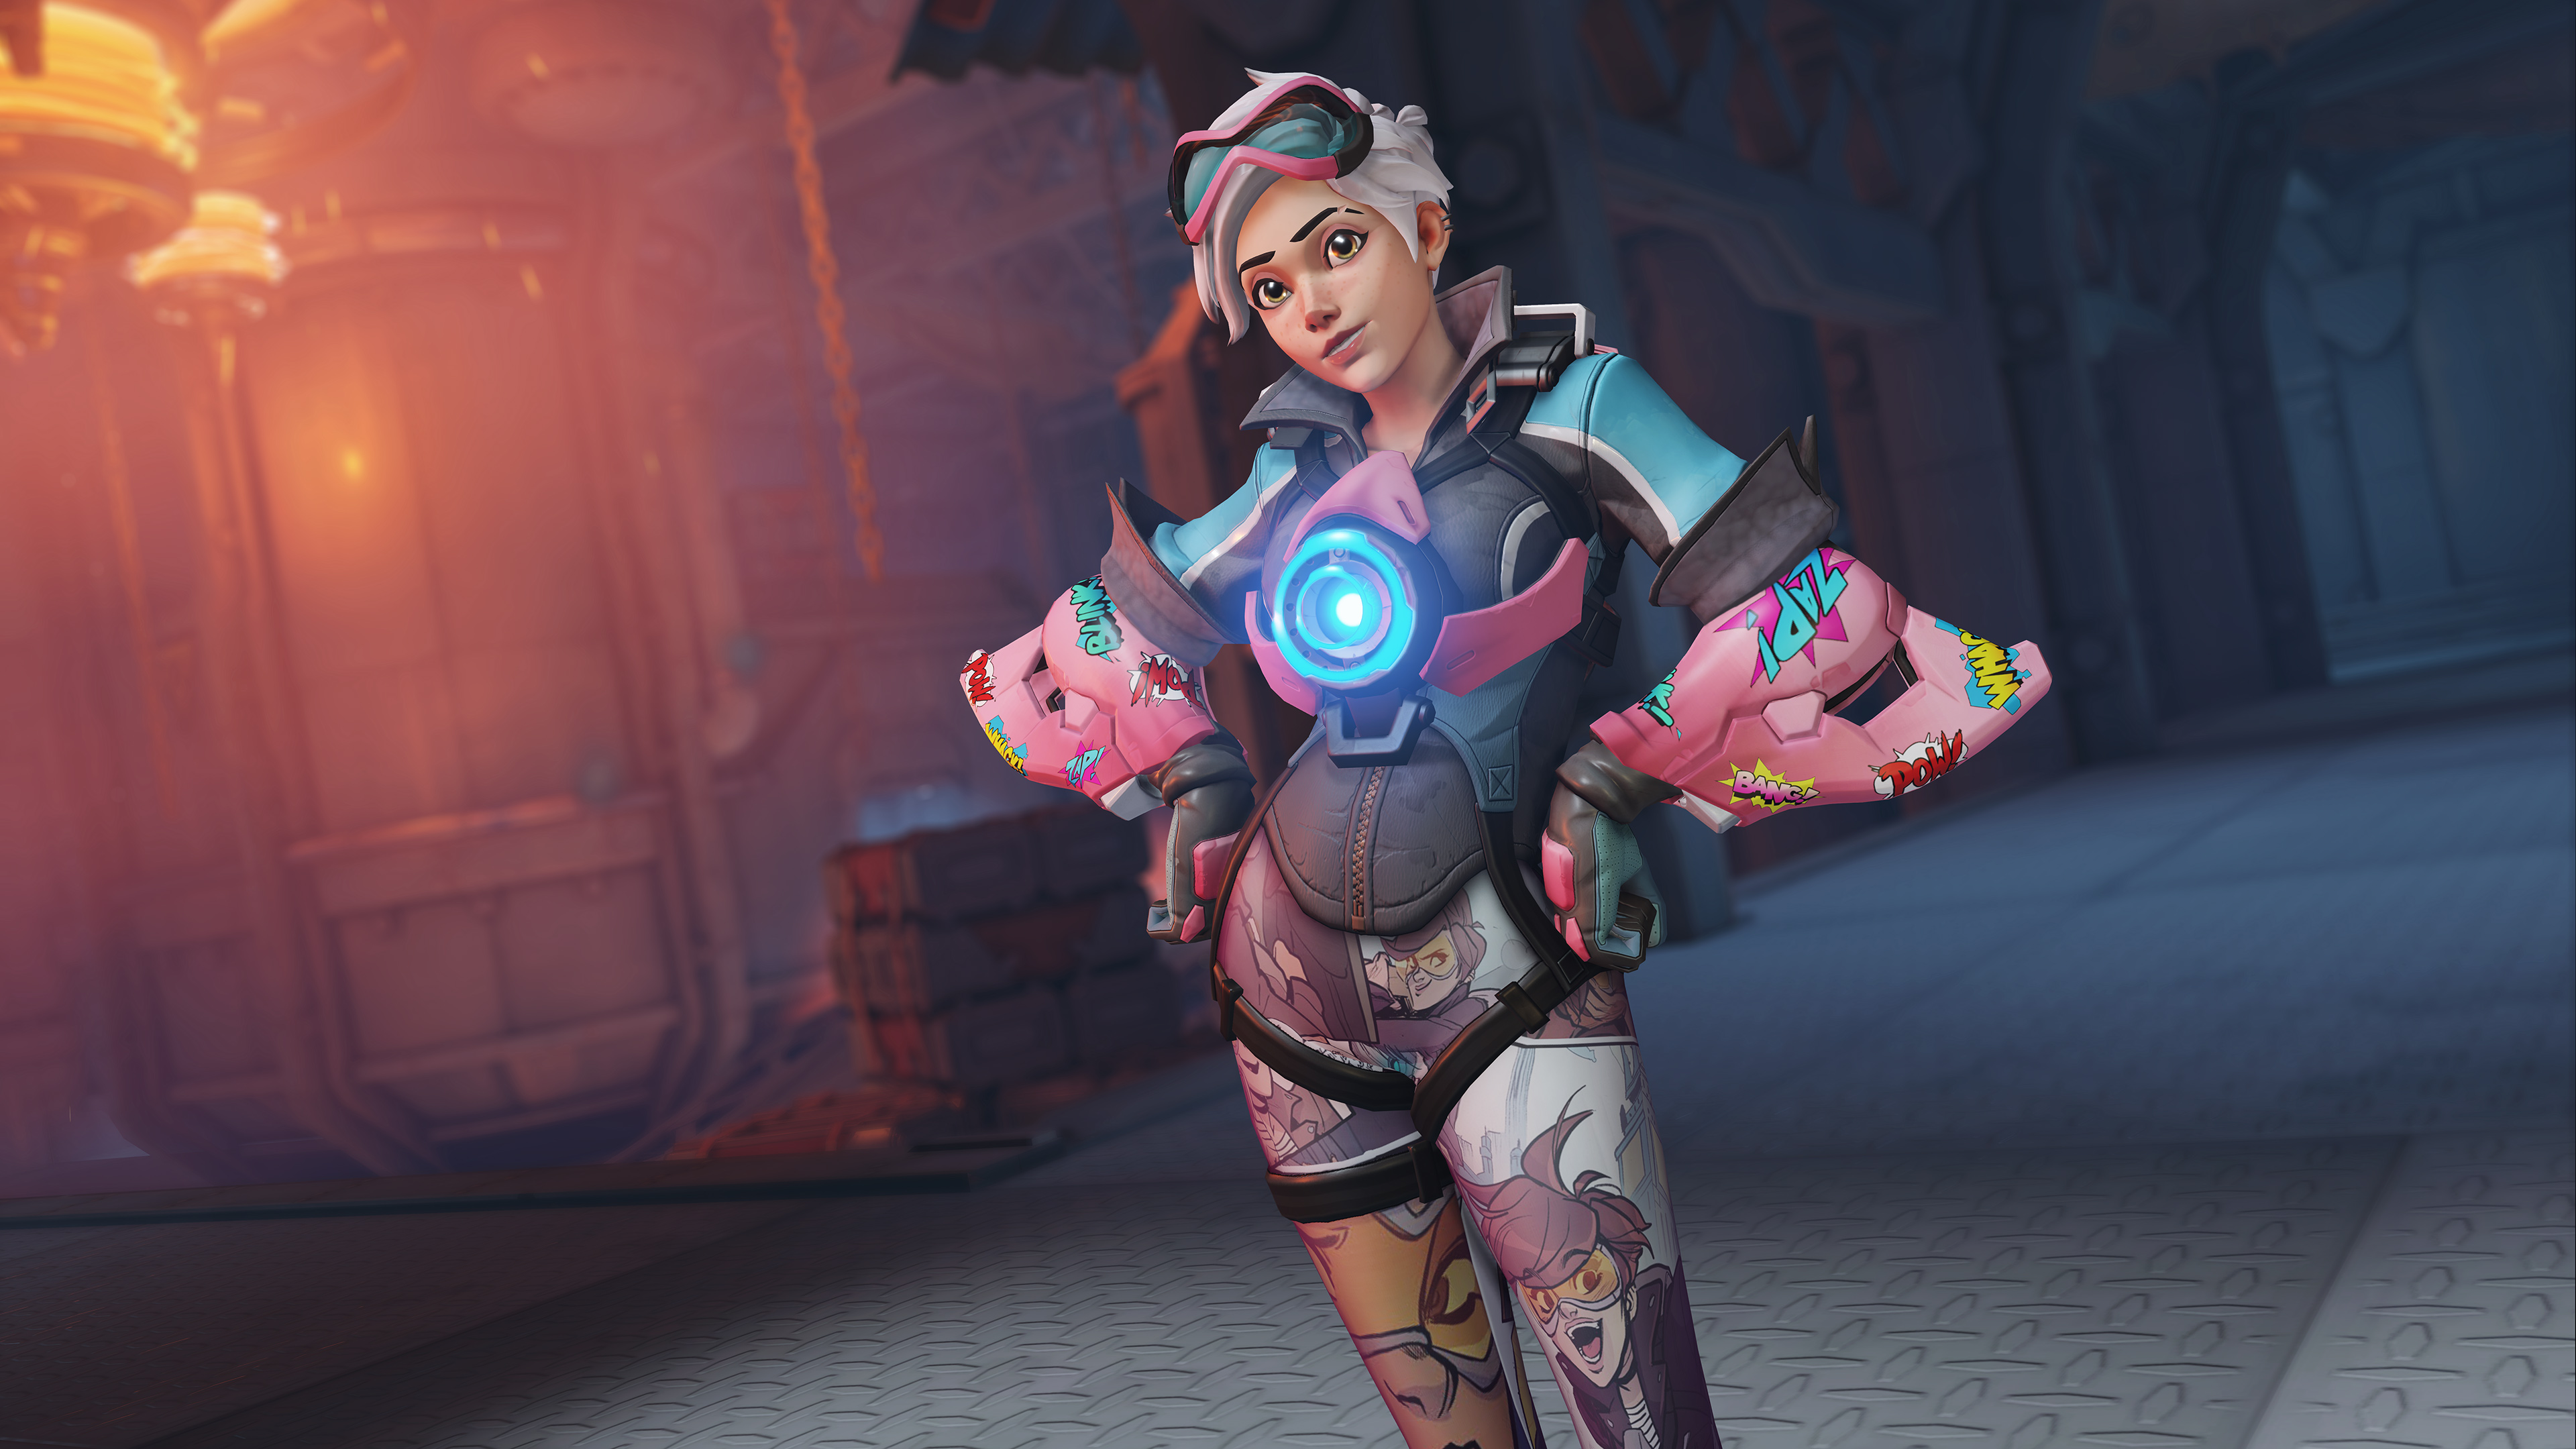 You can play Overwatch for free next week with Nintendo Switch Online screenshot